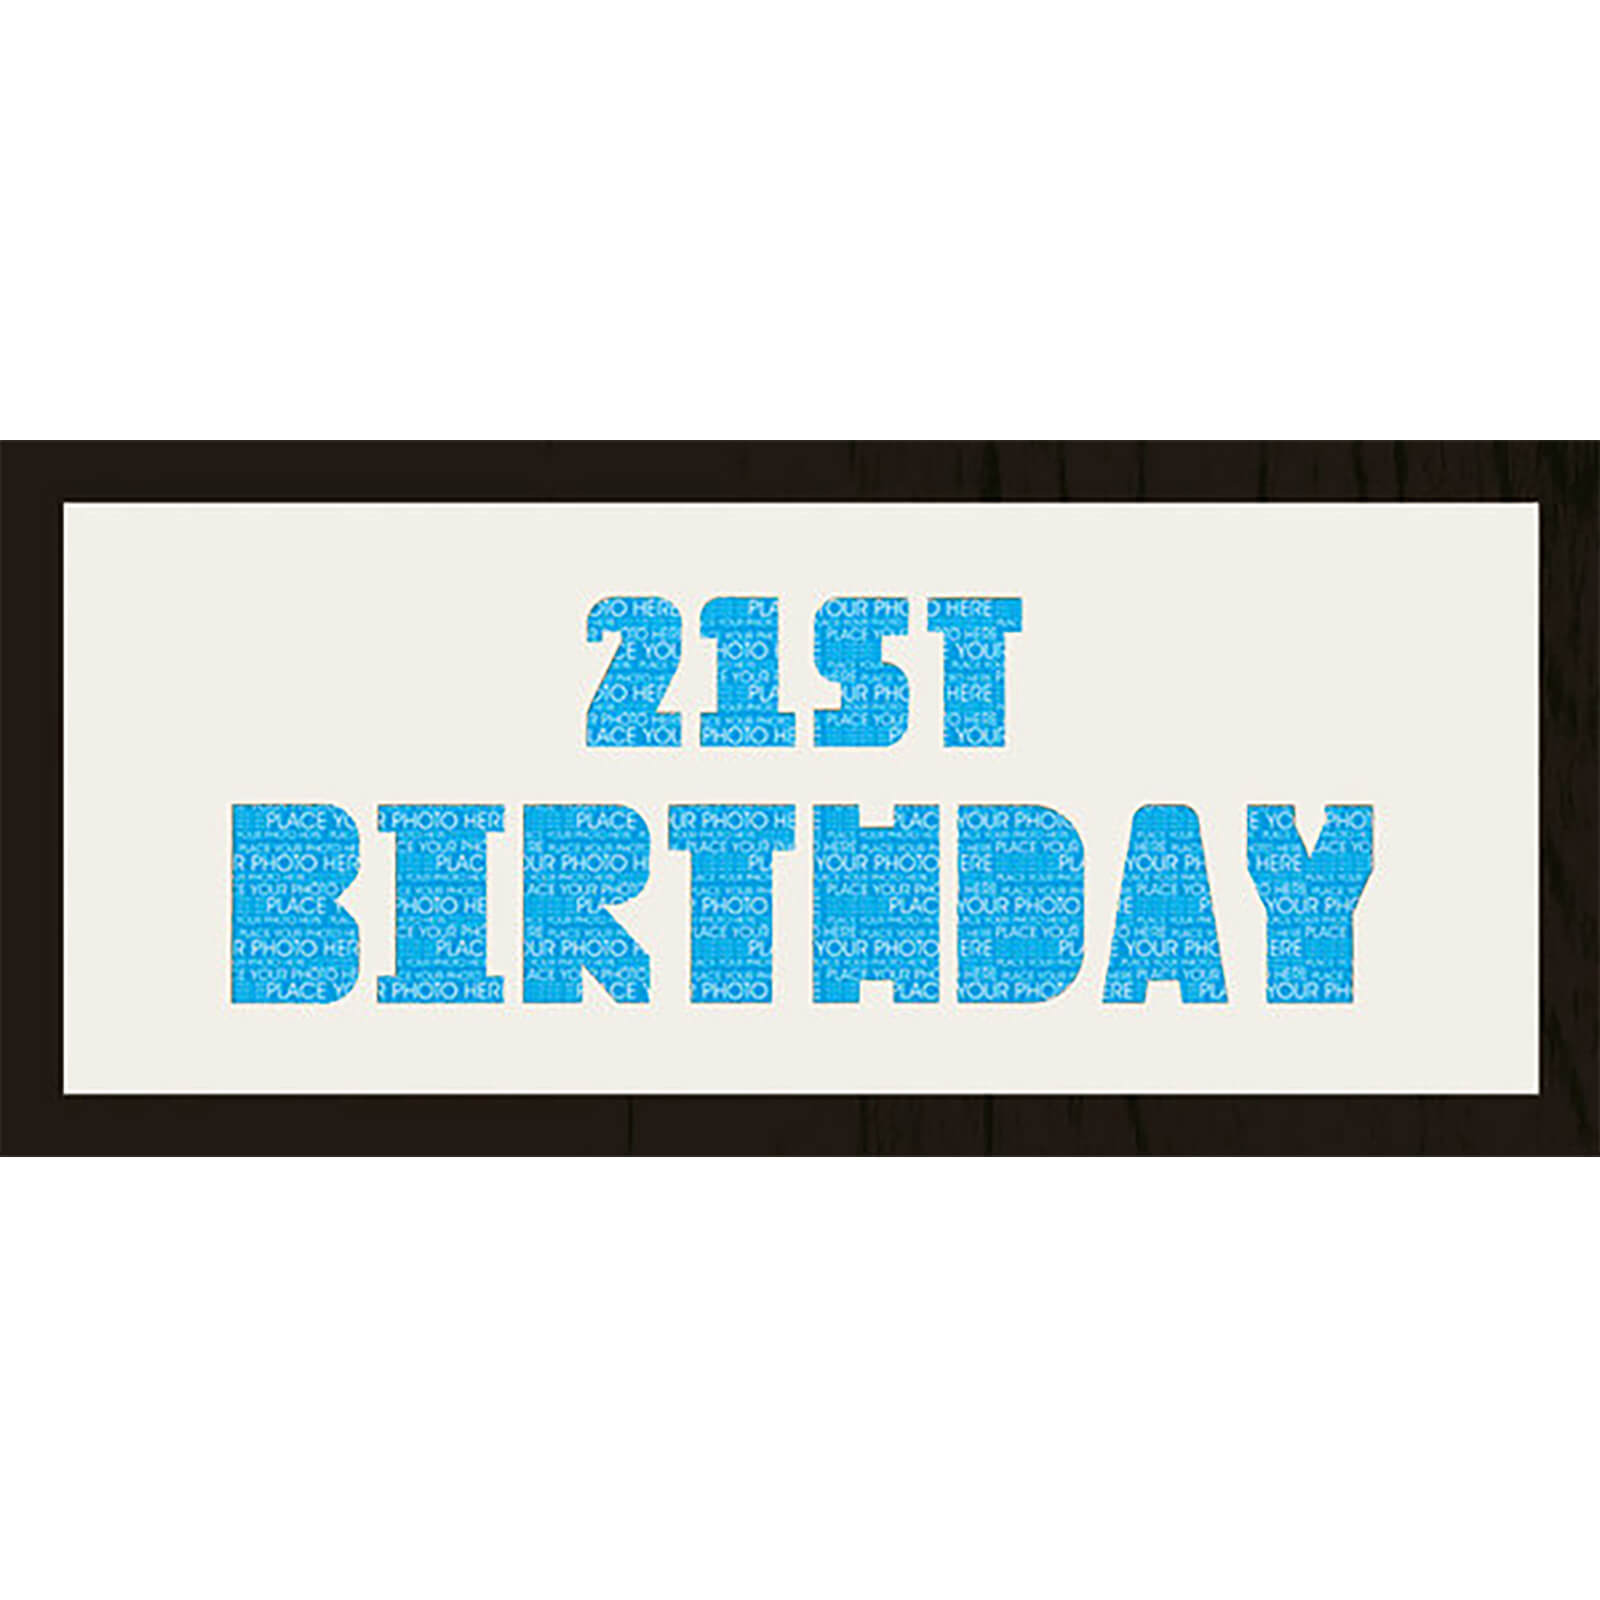 "GB Cream Mount 21st Birthday Photo Font - Framed Mount - 12"""" x 30"""